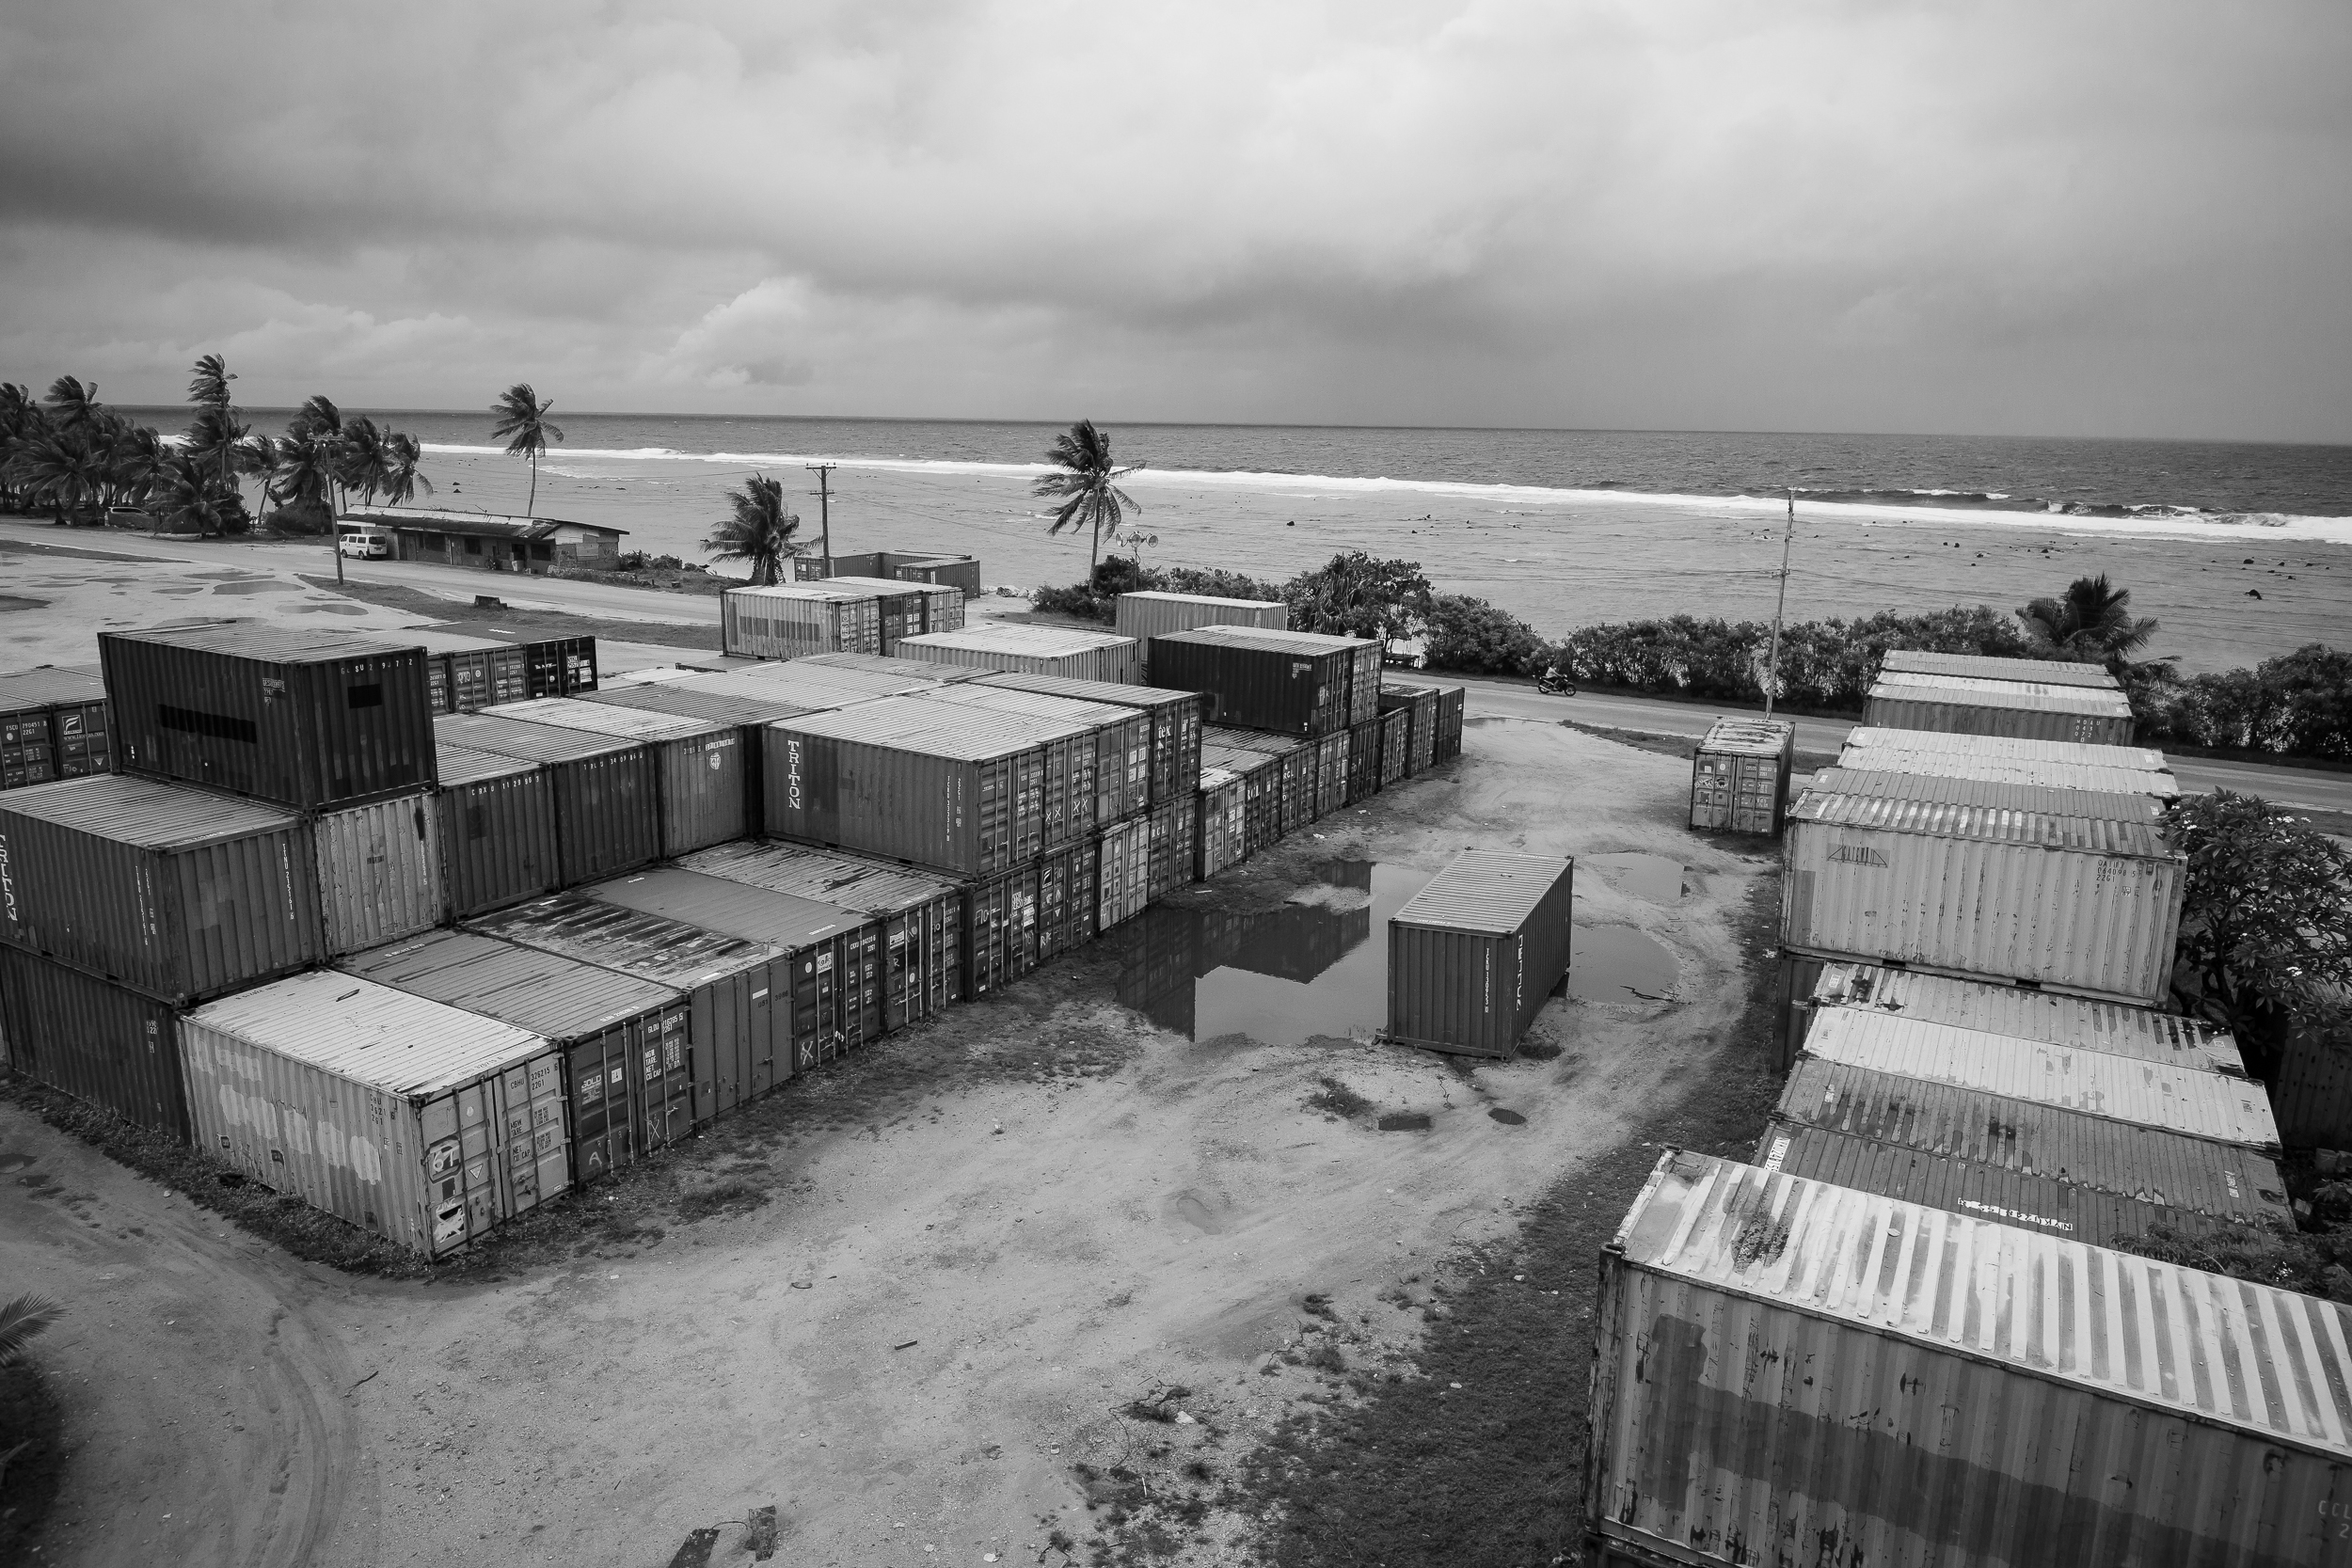 With no natural resources except the scant remaining phosphate, Nauru must import virtually everything. From food and water, to clothing and Harley Davidsons, the country is littered with empty shipping containers used to import goods.